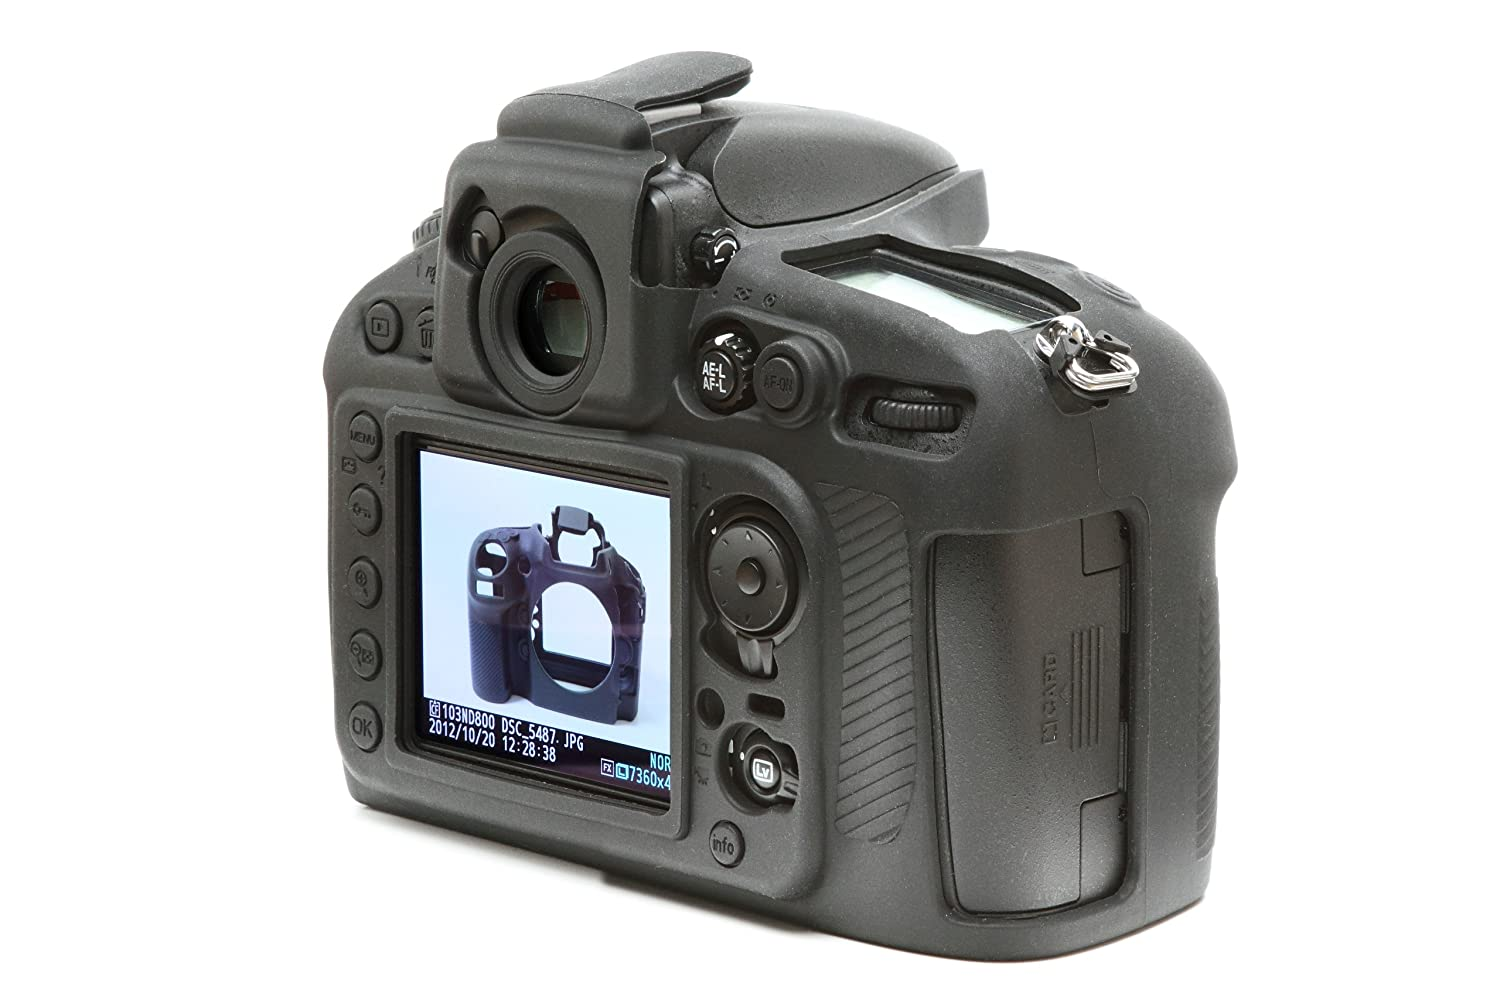 Easy Silicon Cover Case For Nikon D800 With Lcd Protect Imaging Products Parts And Controls D800e Film Black Electronics